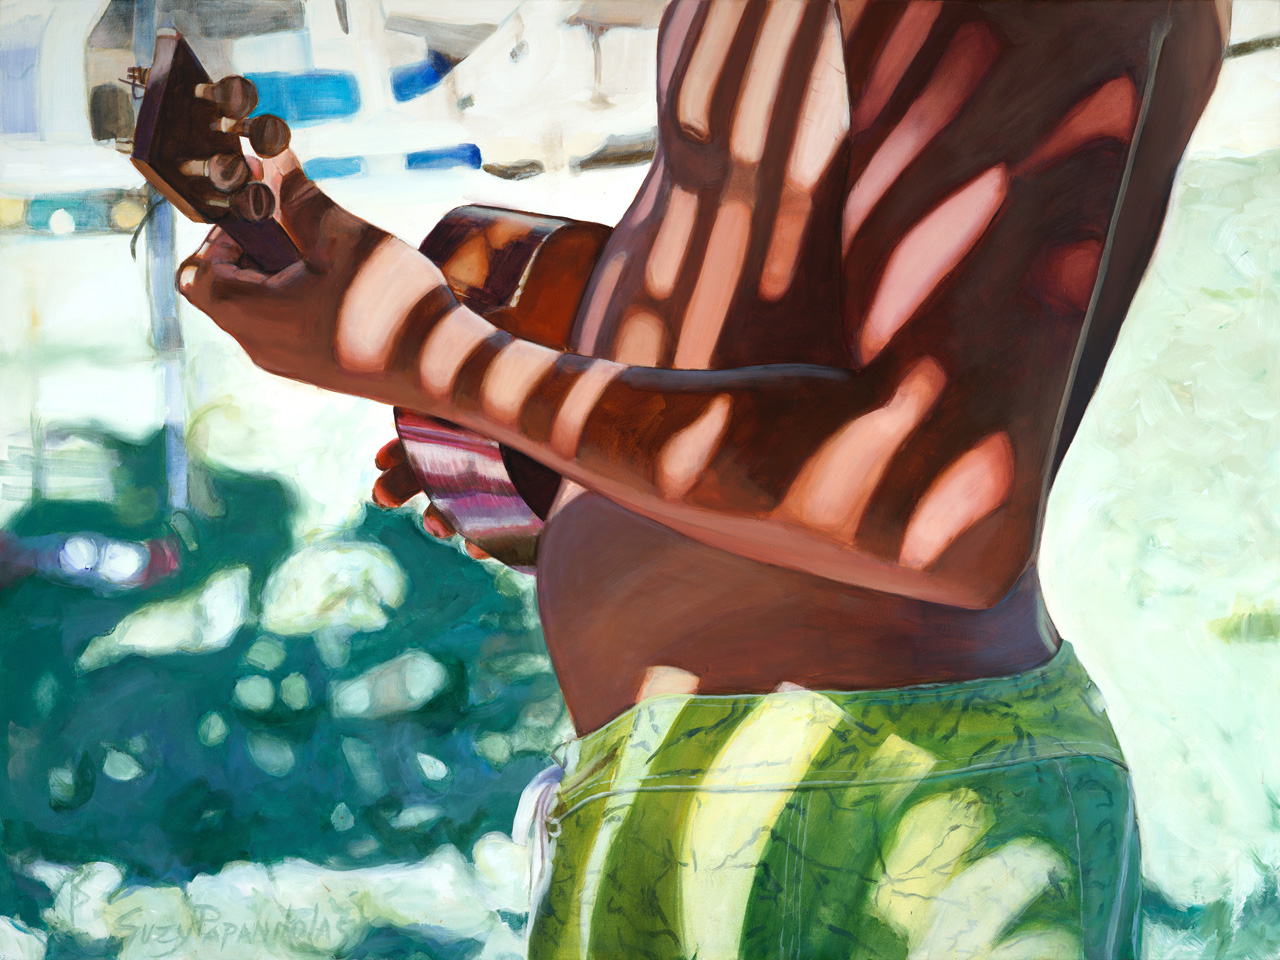 Giclee of a young boy holding a Ukulele with a plam tree shadow by Suzy Papanikolas